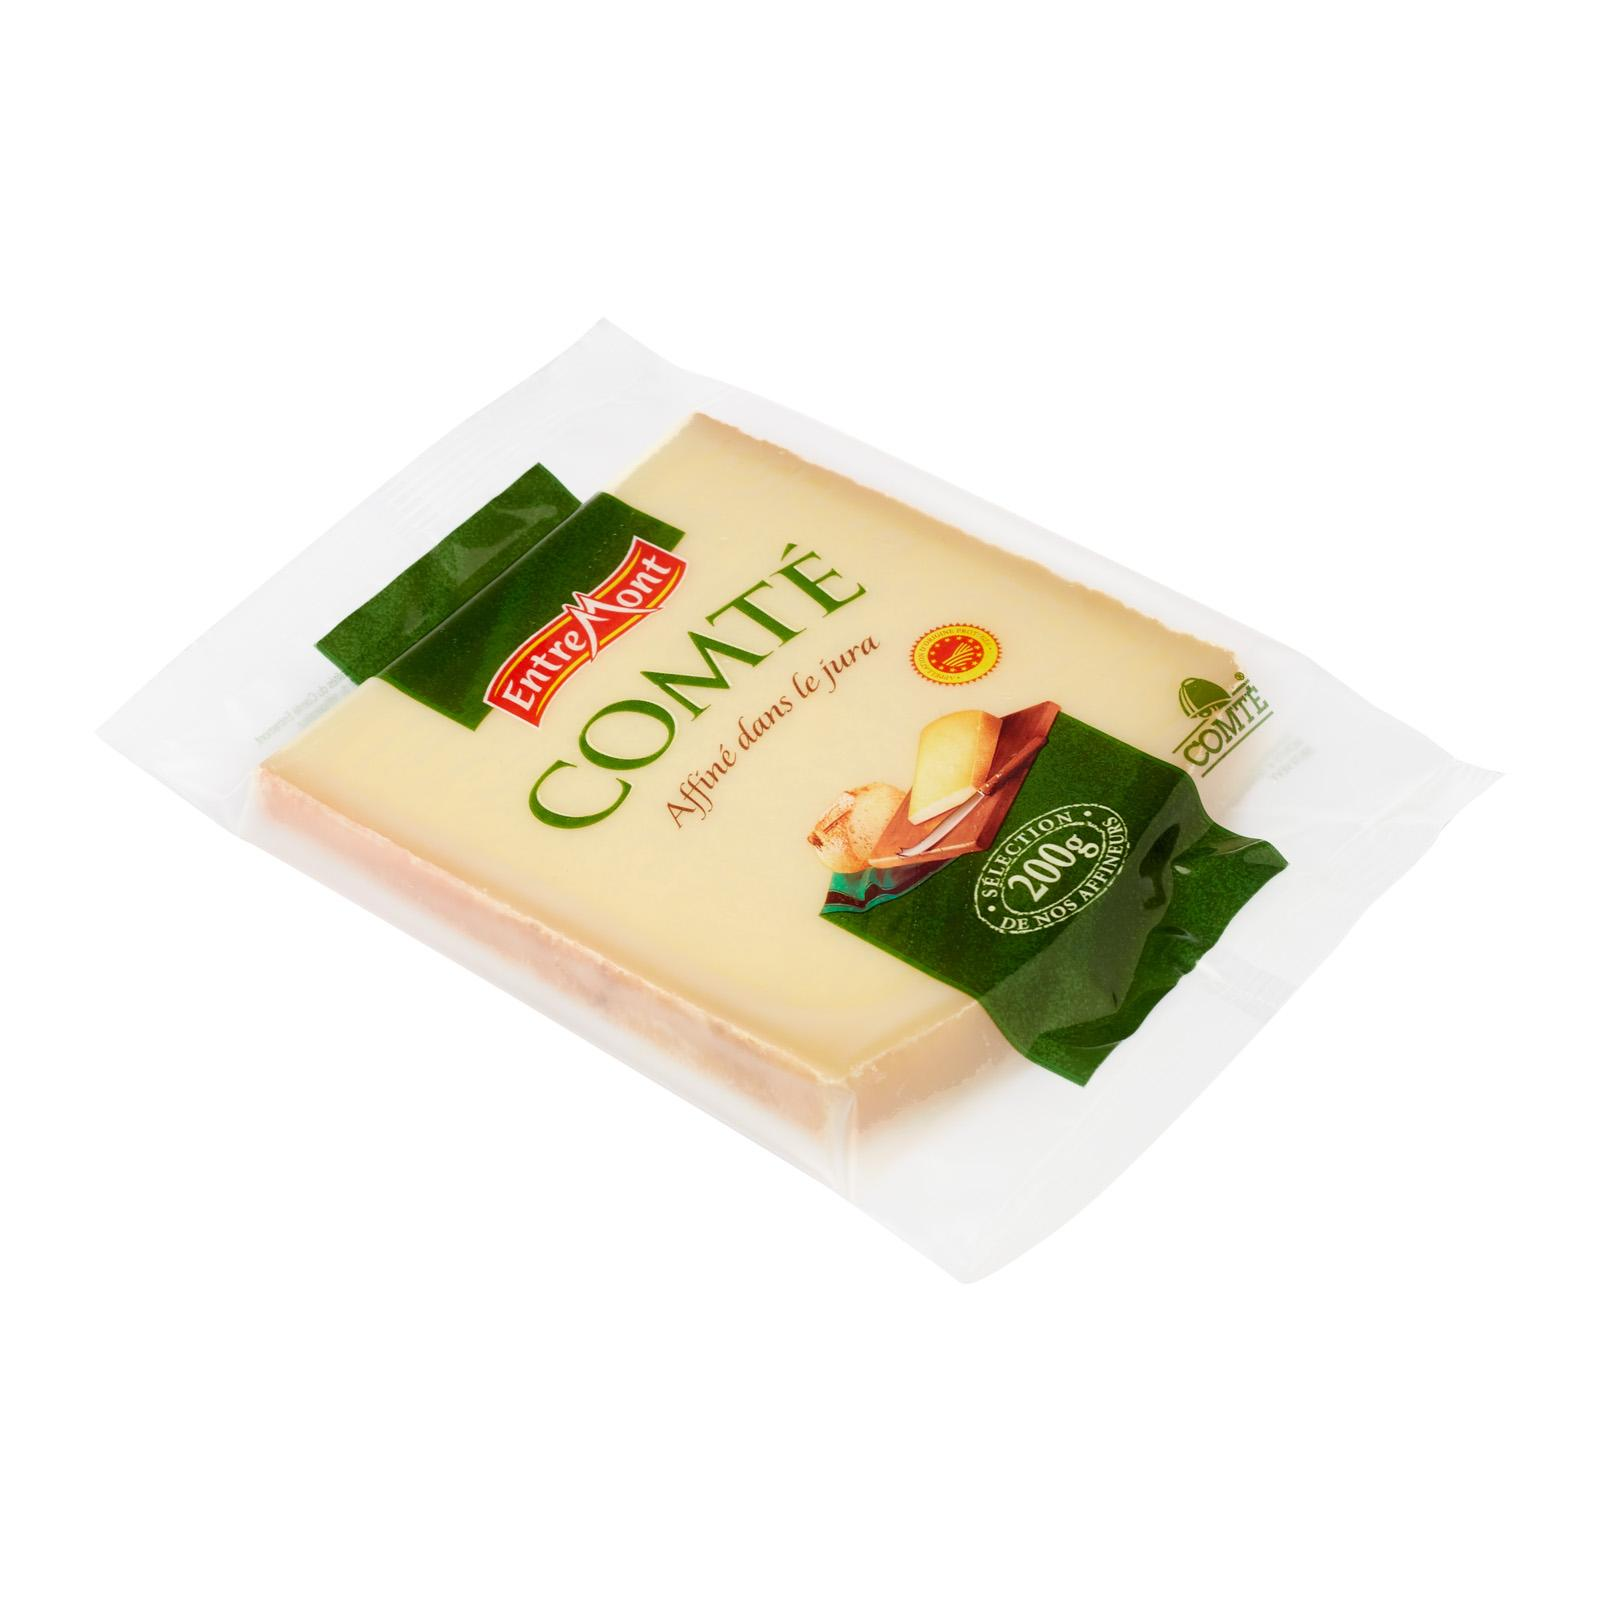 Entremont Comte Cheese